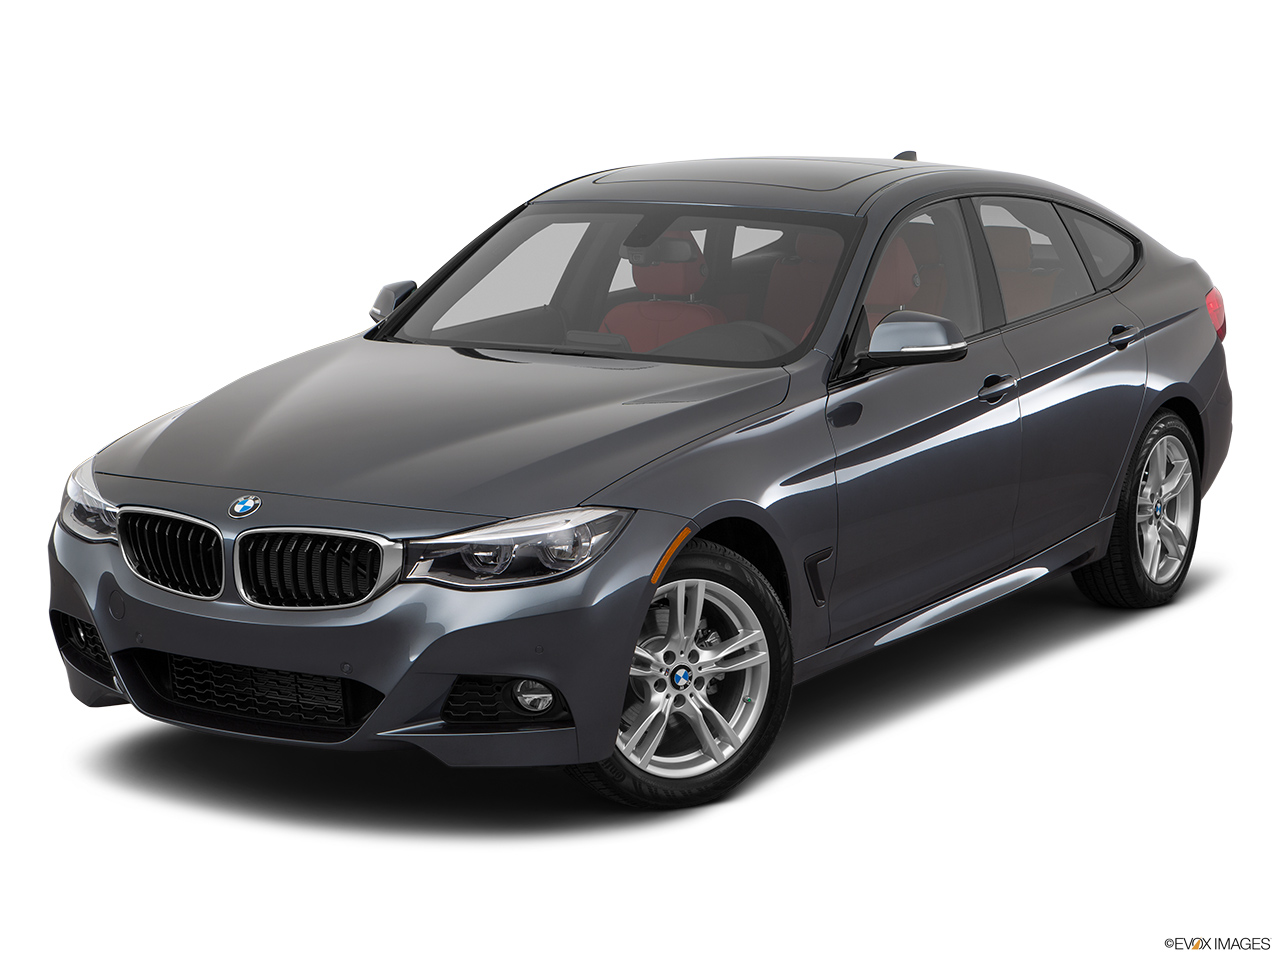 BMW Series Gran Turismo Prices In Saudi Arabia Gulf Specs - Bmw 3 series gran turismo price